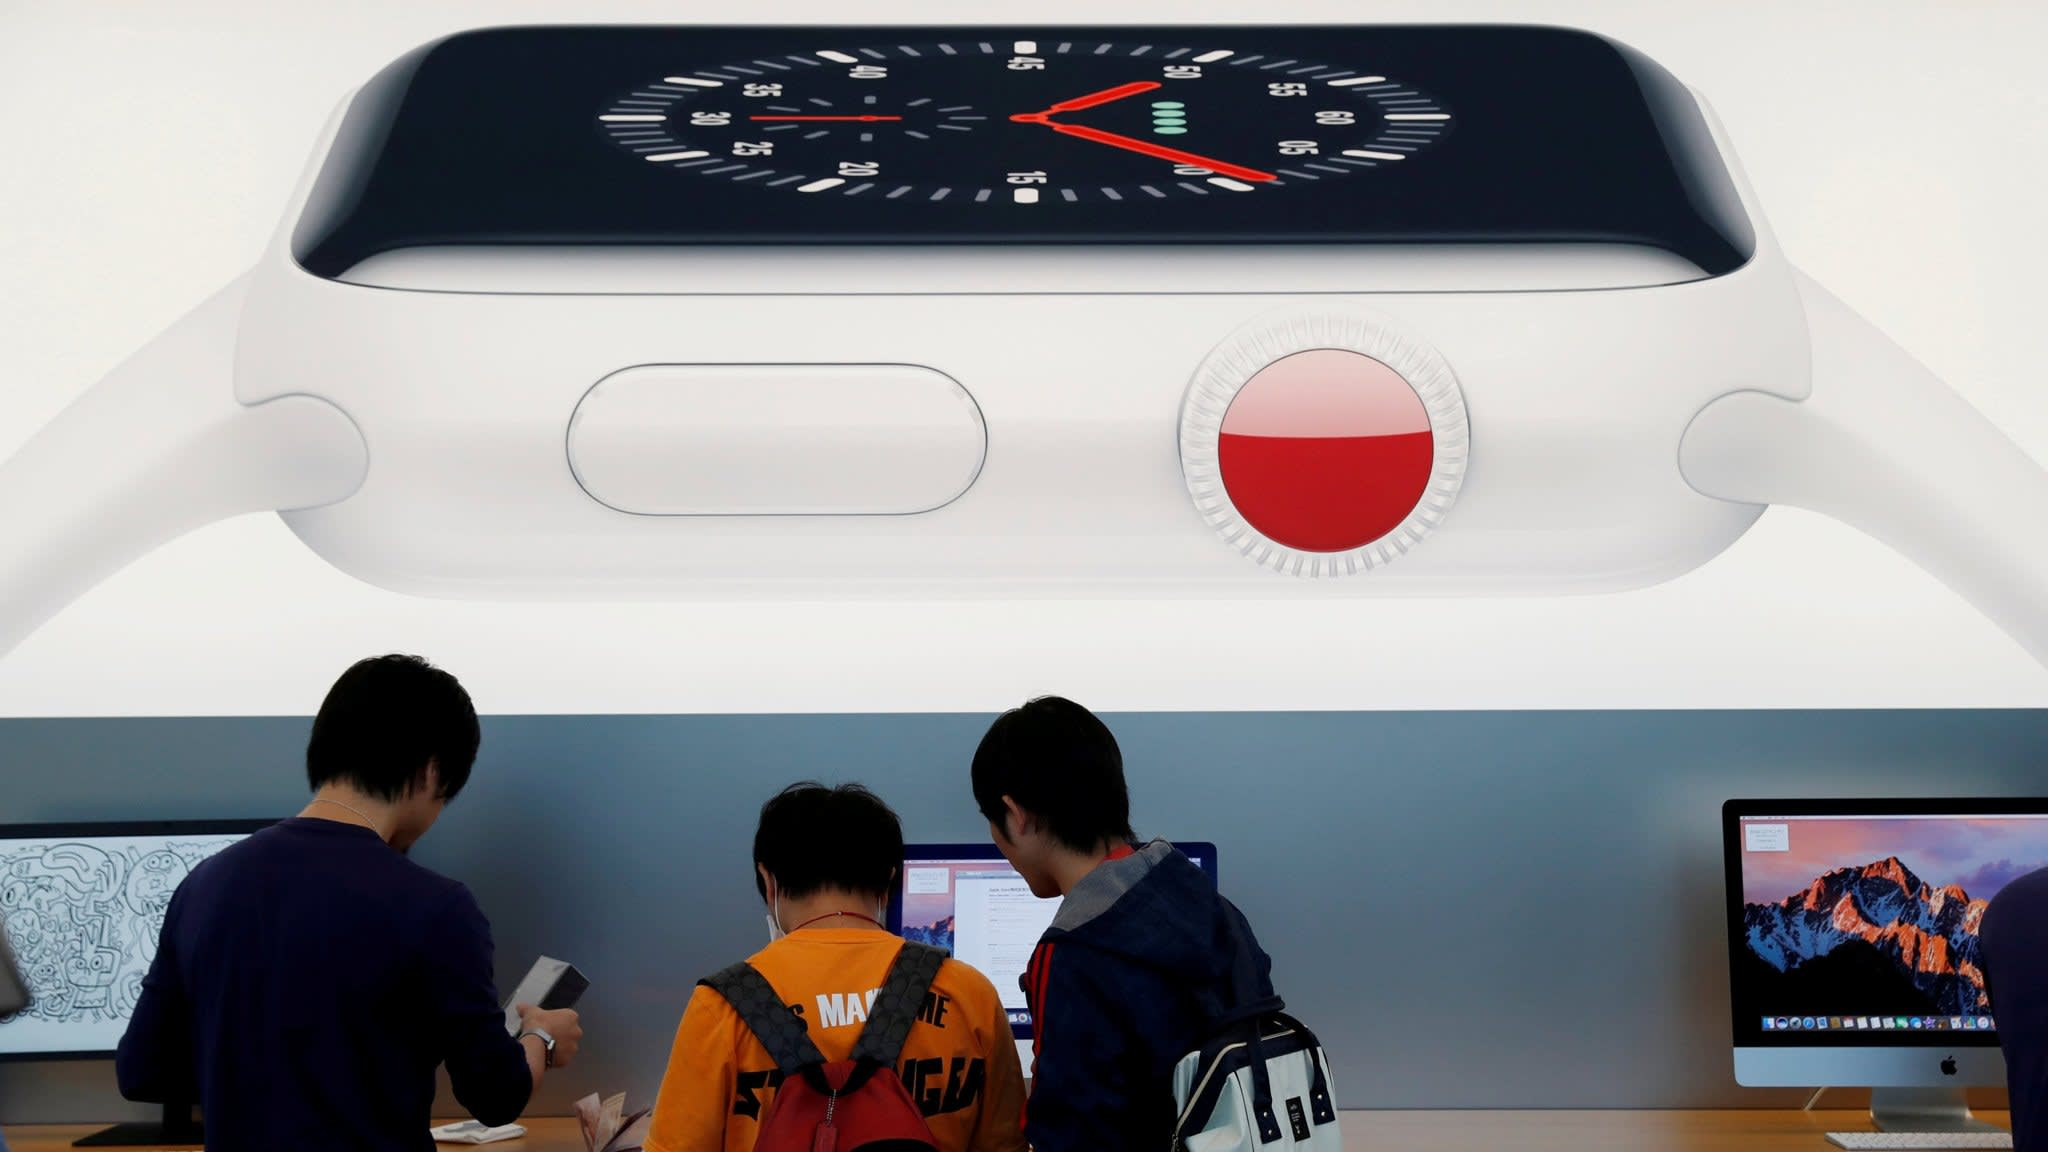 Five things to look out for at Apple's product event